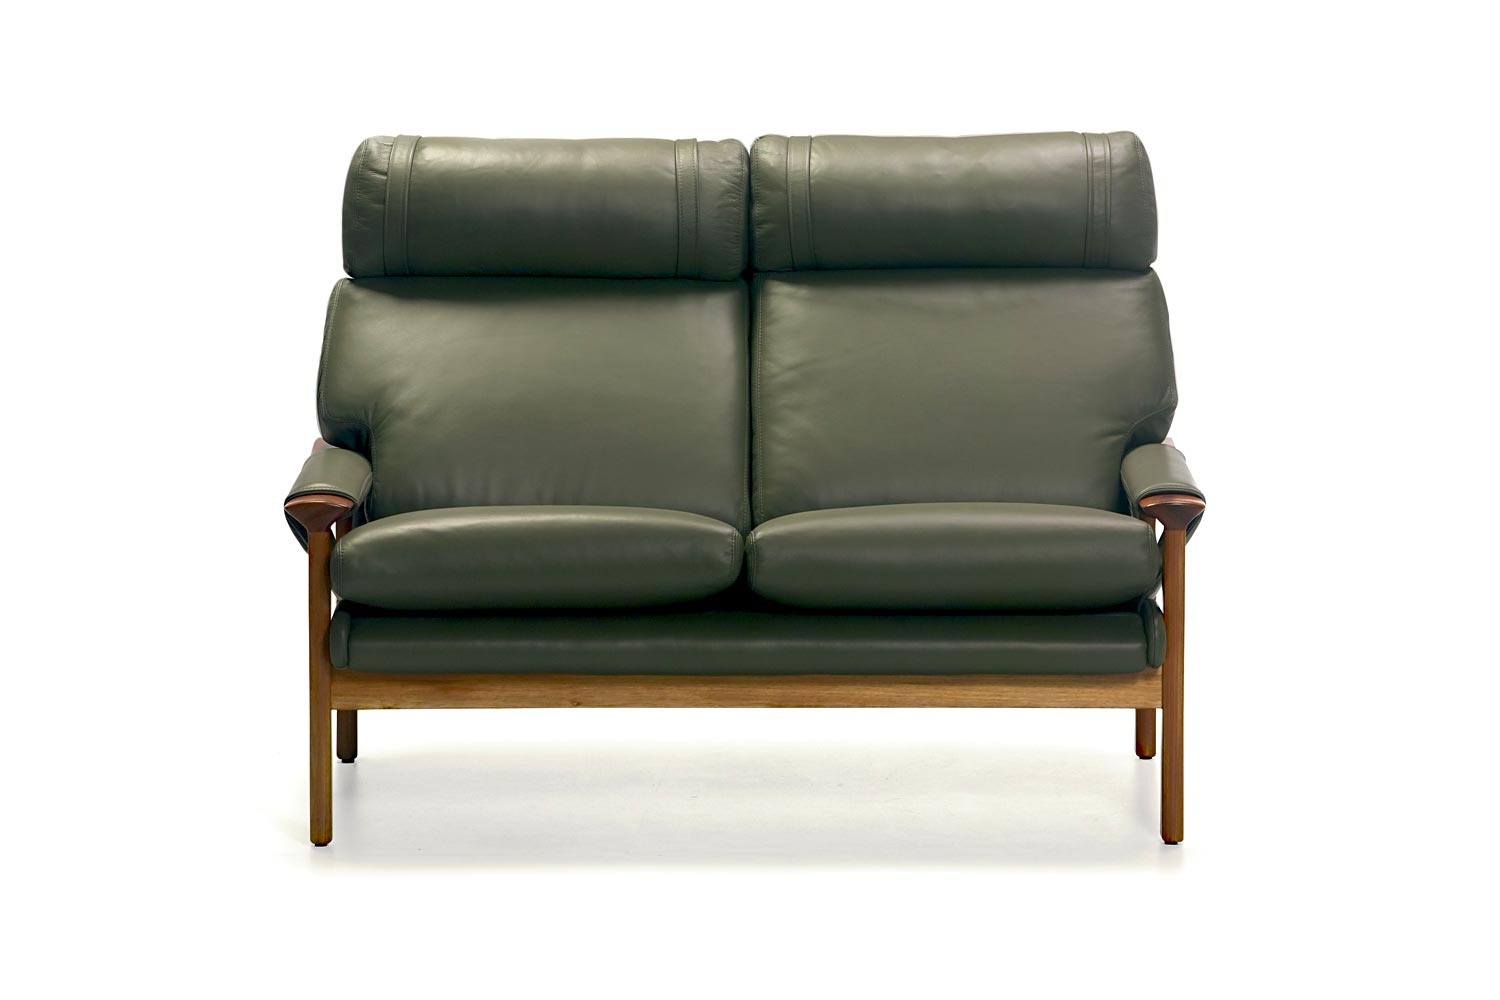 Australian Made Sofas T21 2 Seater Tessa Furniture